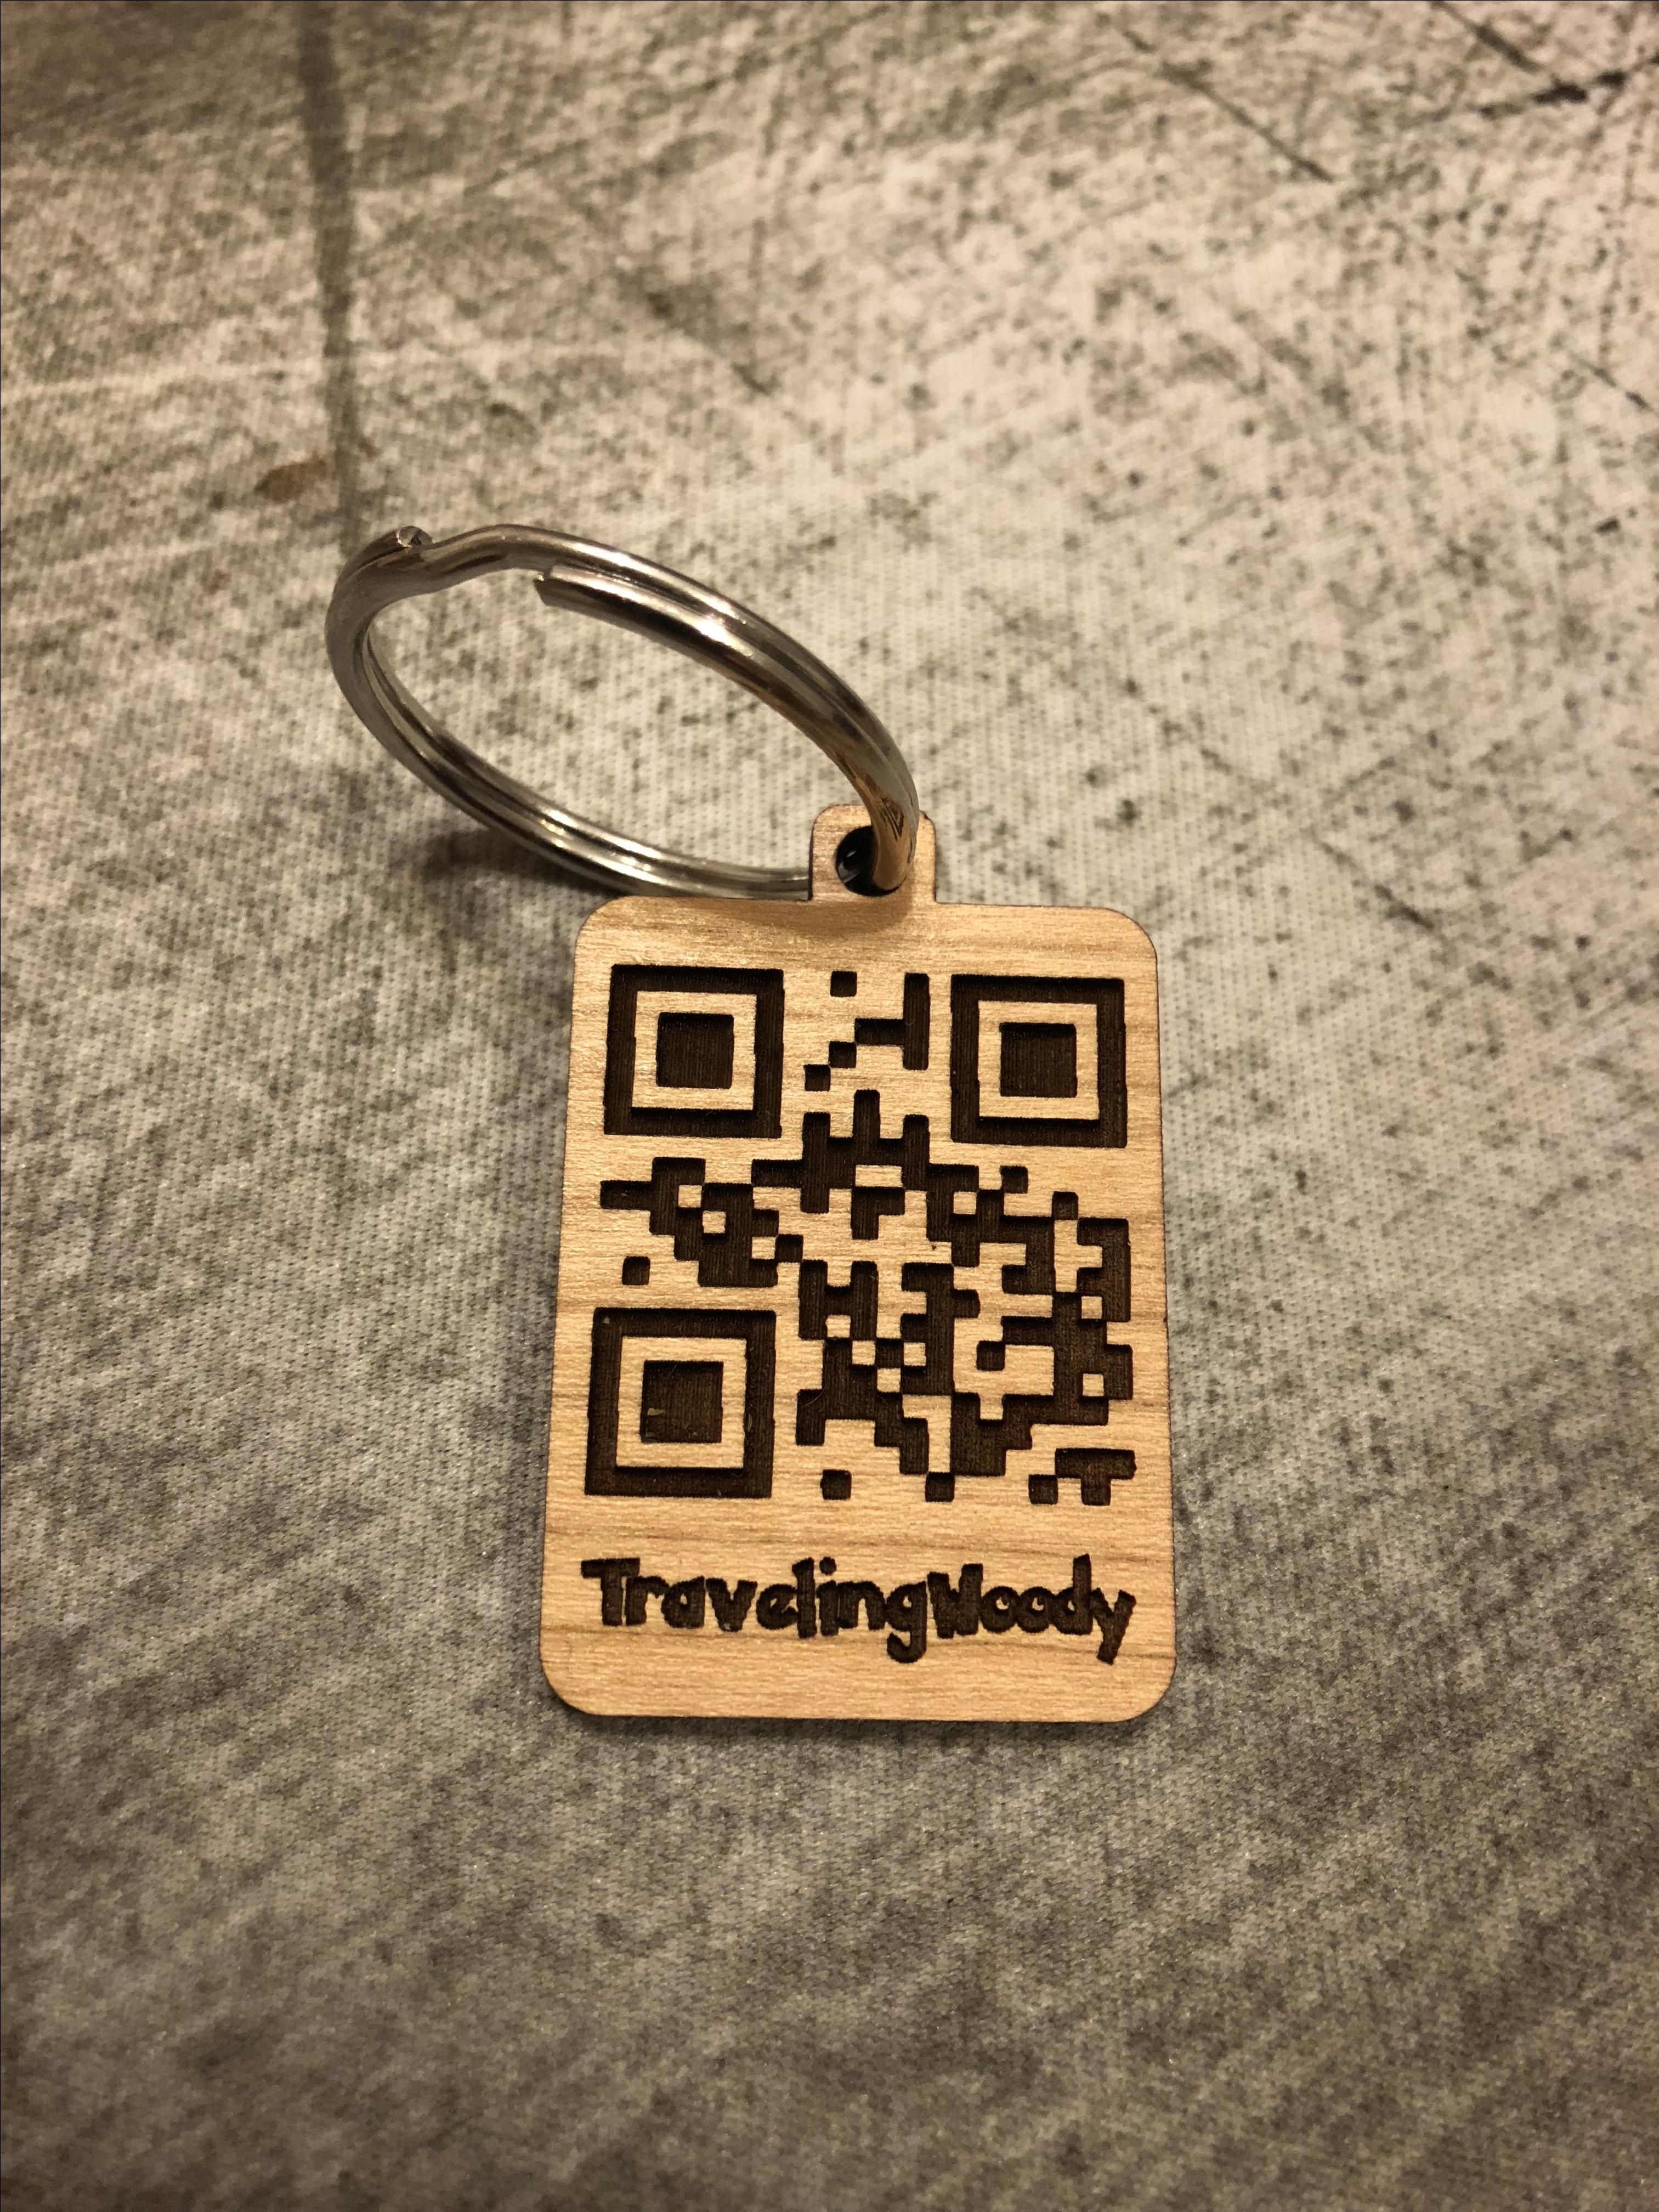 Buy A Handmade Pok 233 Mon Go Trainer Qr Code Keychain Made